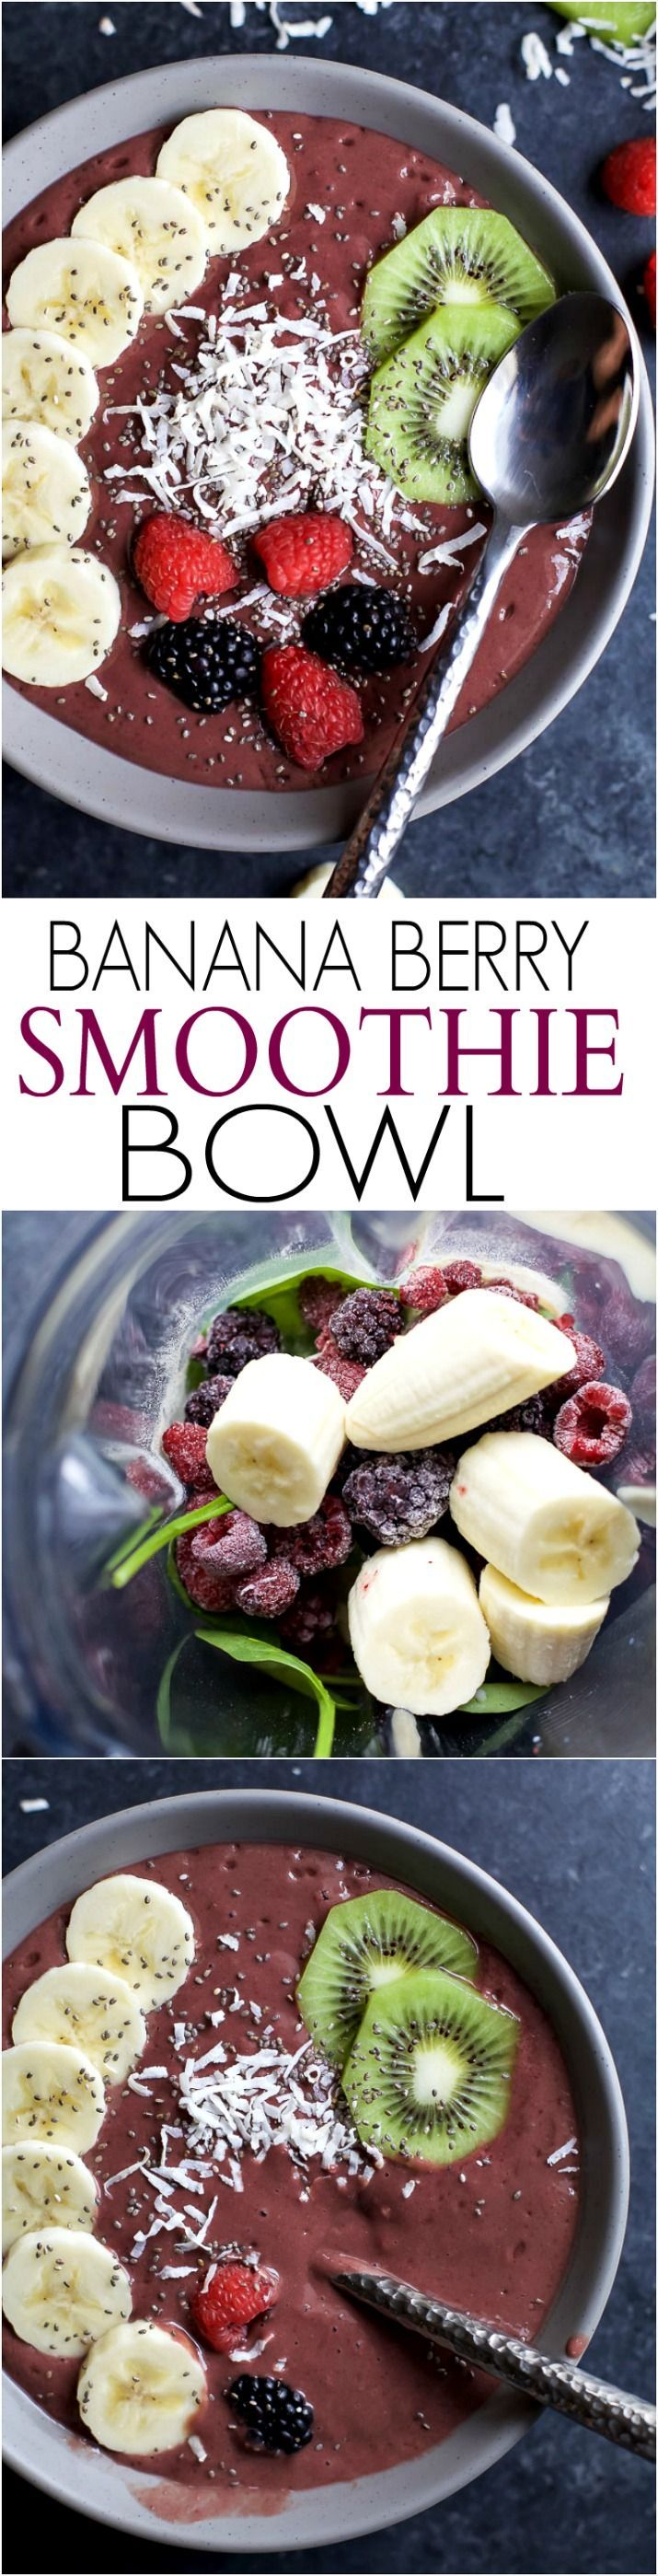 BANANA BERRY SMOOTHIE BOWL an easy delicious way to add protein, fiber, fruits, and veggies to your breakfast! Easily customize the toppings to your Smoothie Bowl. Tastes so good, you won't know it's healthy! | http://joyfulhealthyeats.com | gluten free recipes | healthy recipes | easy breakfast recipes | dairy free